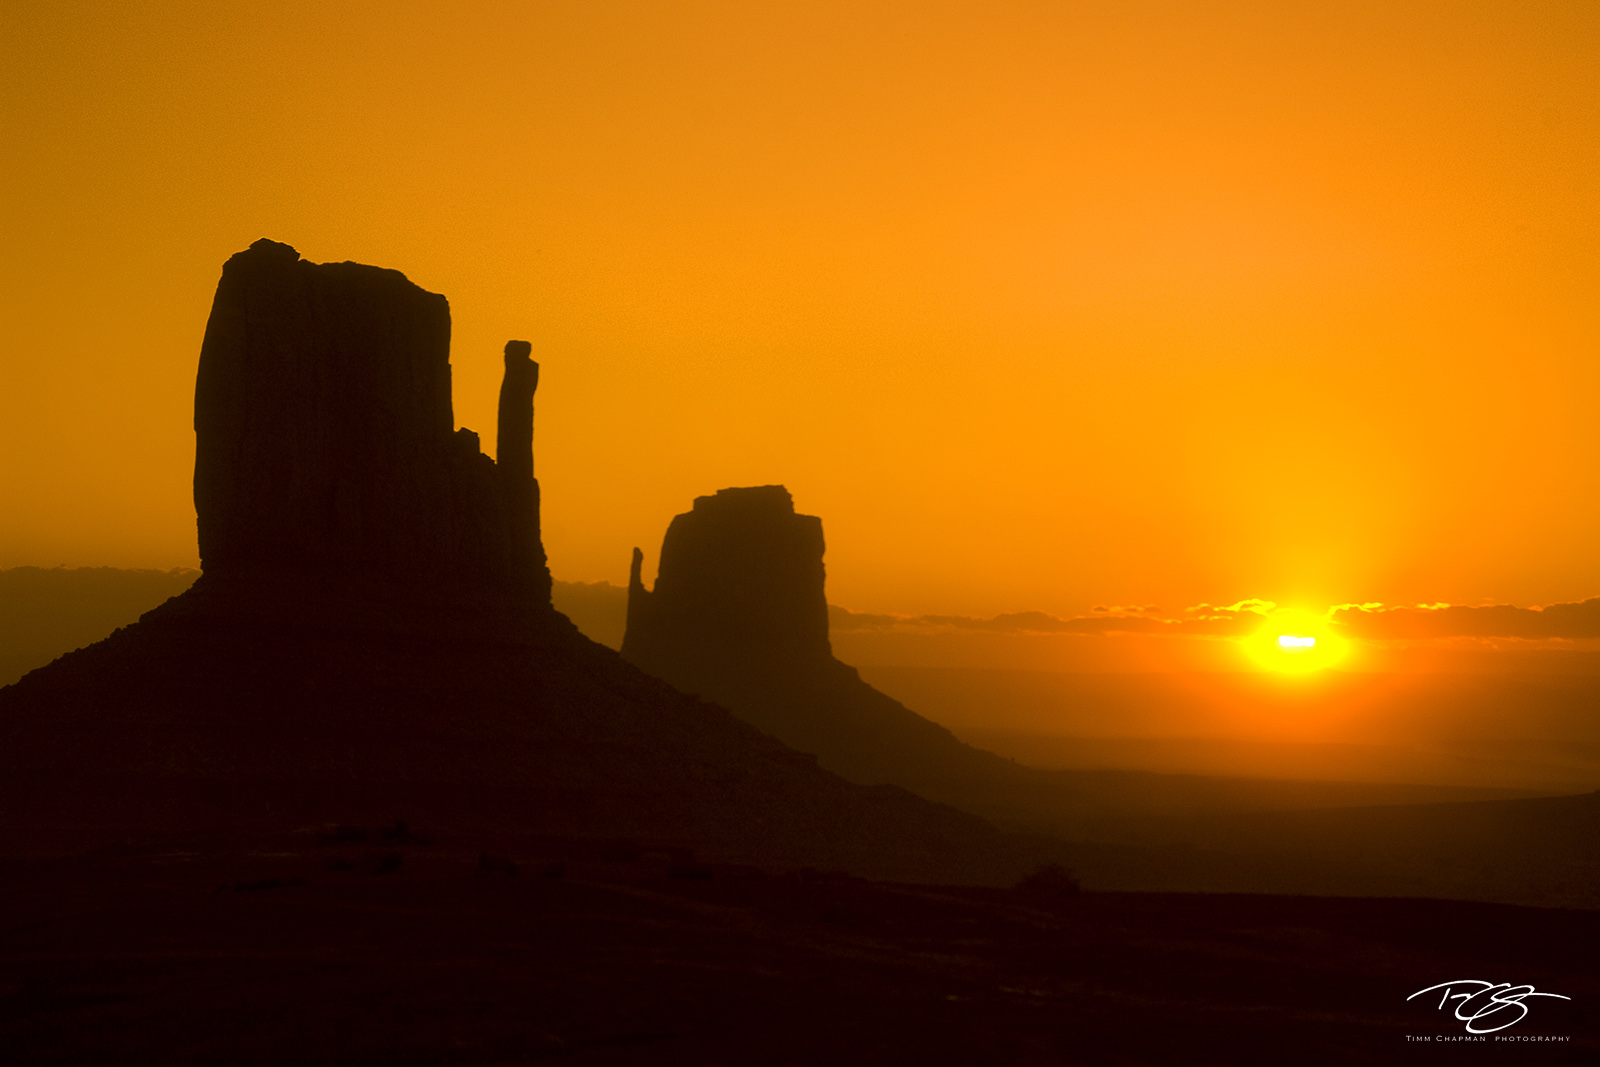 Utah, Arizona, Monument Valley, Southwest, Geology, Mittens, West Mitten, East Mitten, Butte, orange sky, silhouettes, misty, Navajo land, Stagecoach, Old West, sunrise, daybreak, dawn, photo